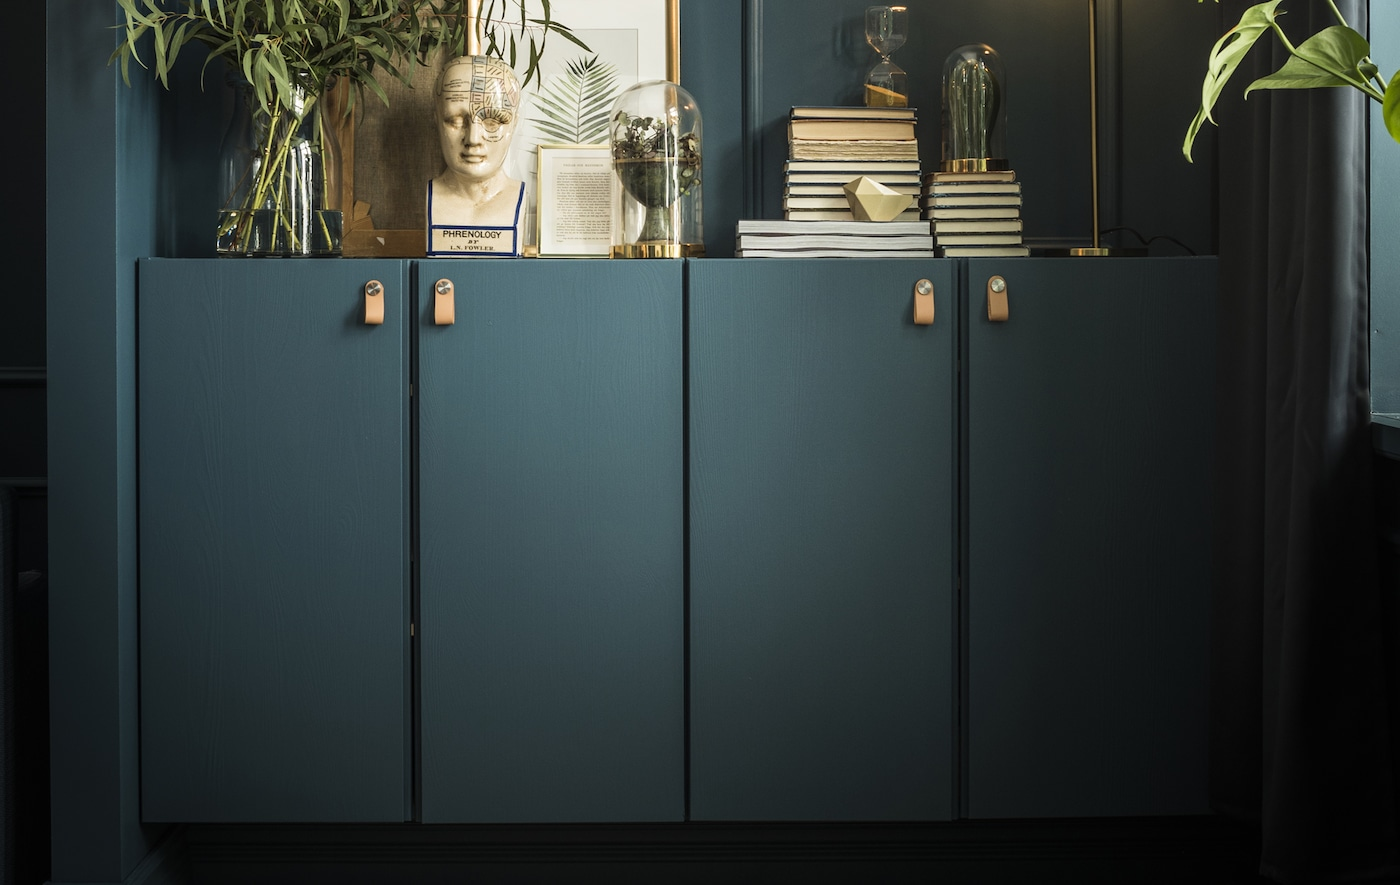 Books, plants, and art sit atop IVAR cabinets that are custom painted the same dark green as this living room's walls.